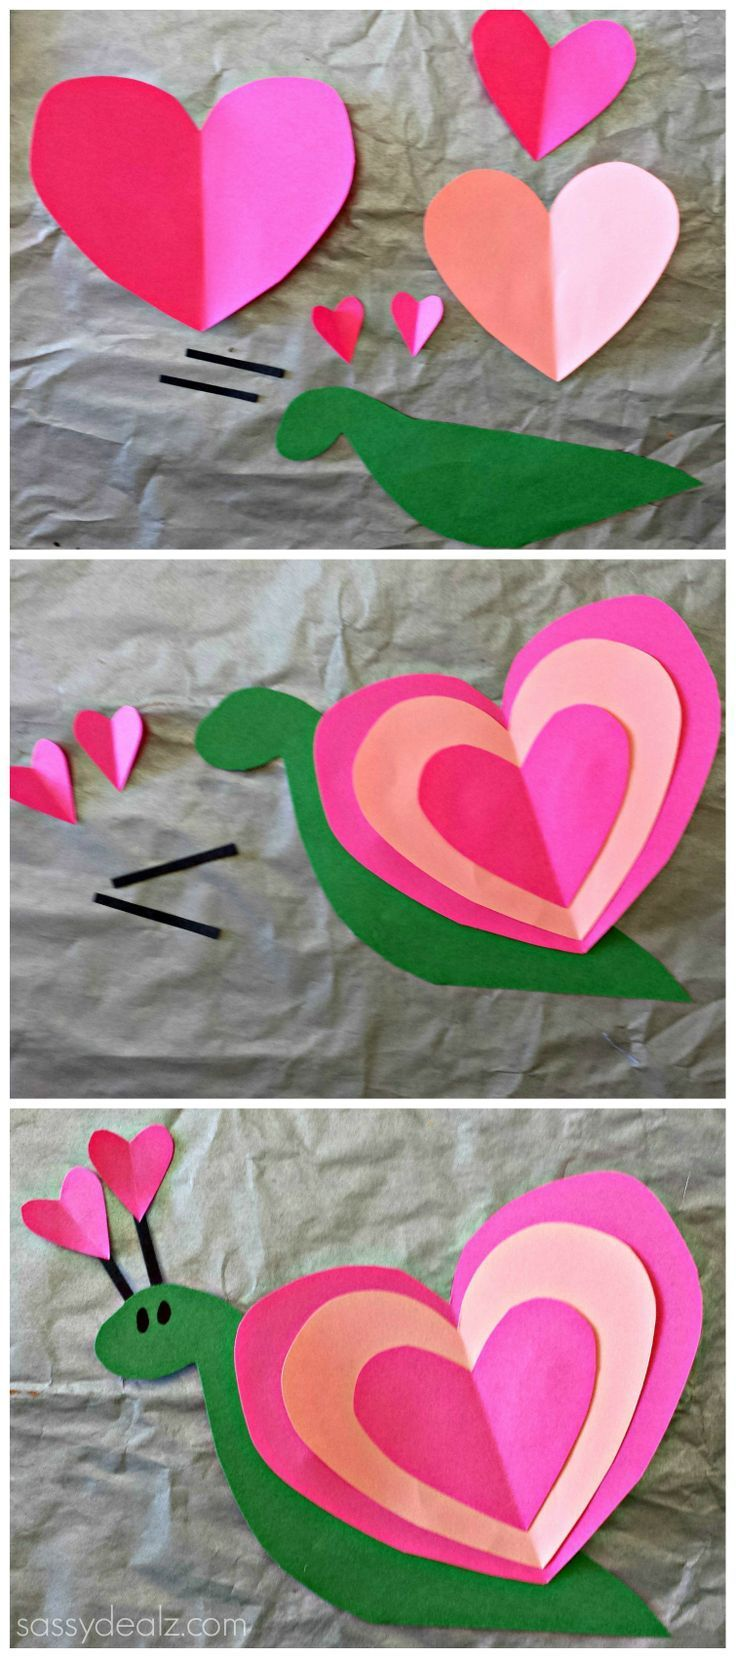 Heart Snail Craft For Kids (Valentine Art Project) #Heart shaped animal #DIY #Kids valentine | http://www.sassydealz.com/2014/01/heart-snail-craft-kids-valentine-art-project.html